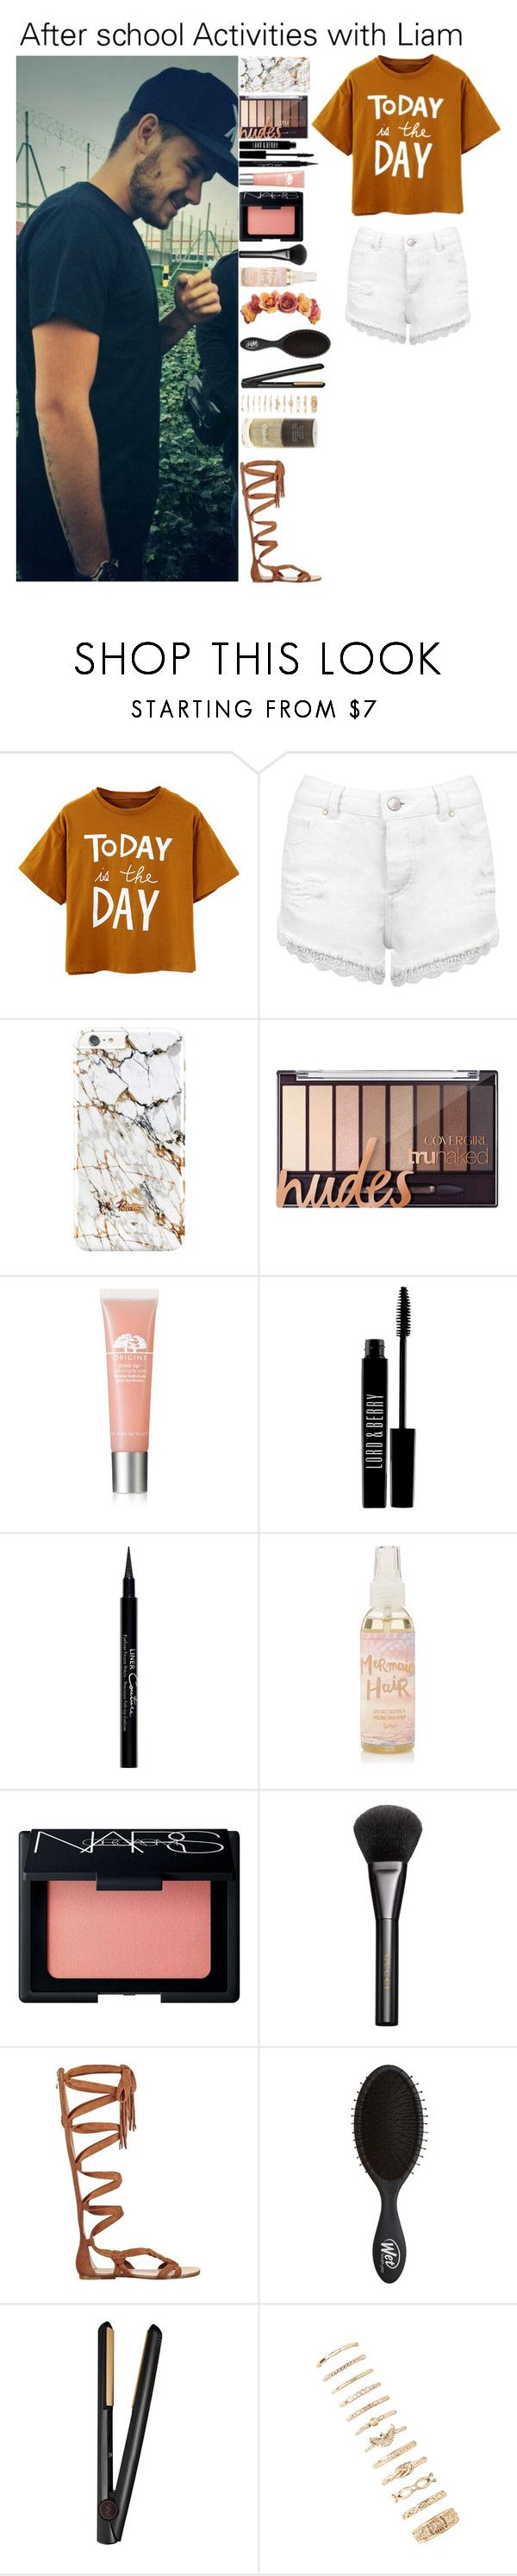 """After school Activities with Liam"" by kateremington-1 ❤ liked on Polyvore featuring Payne, Miss Selfridge, Origins, Lord & Berry, Givenchy, NARS Cosmetics, Gucci, Sigerson Morrison, GHD and Forever 21"